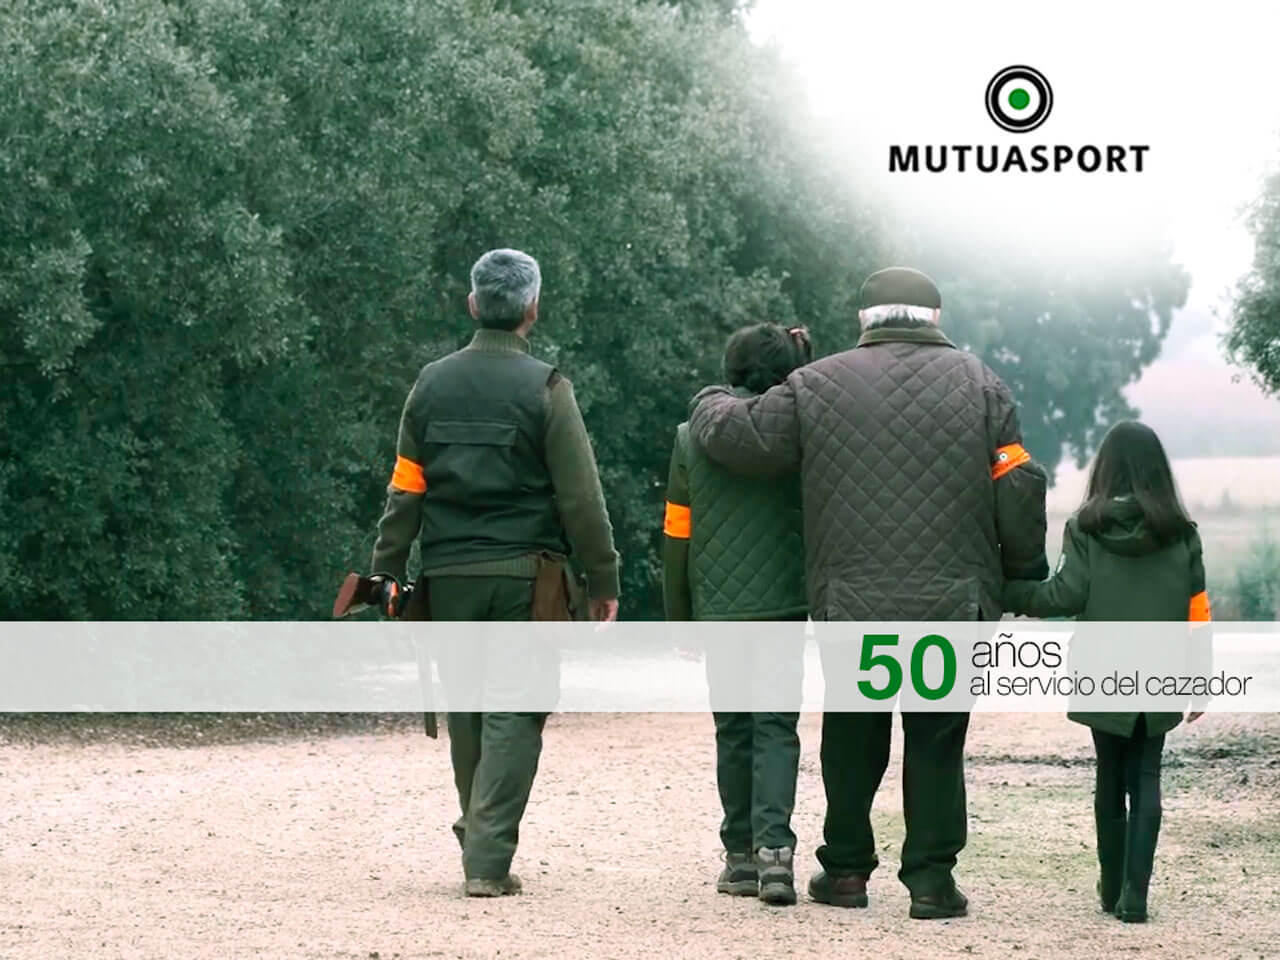 Mutuasport video 50 años